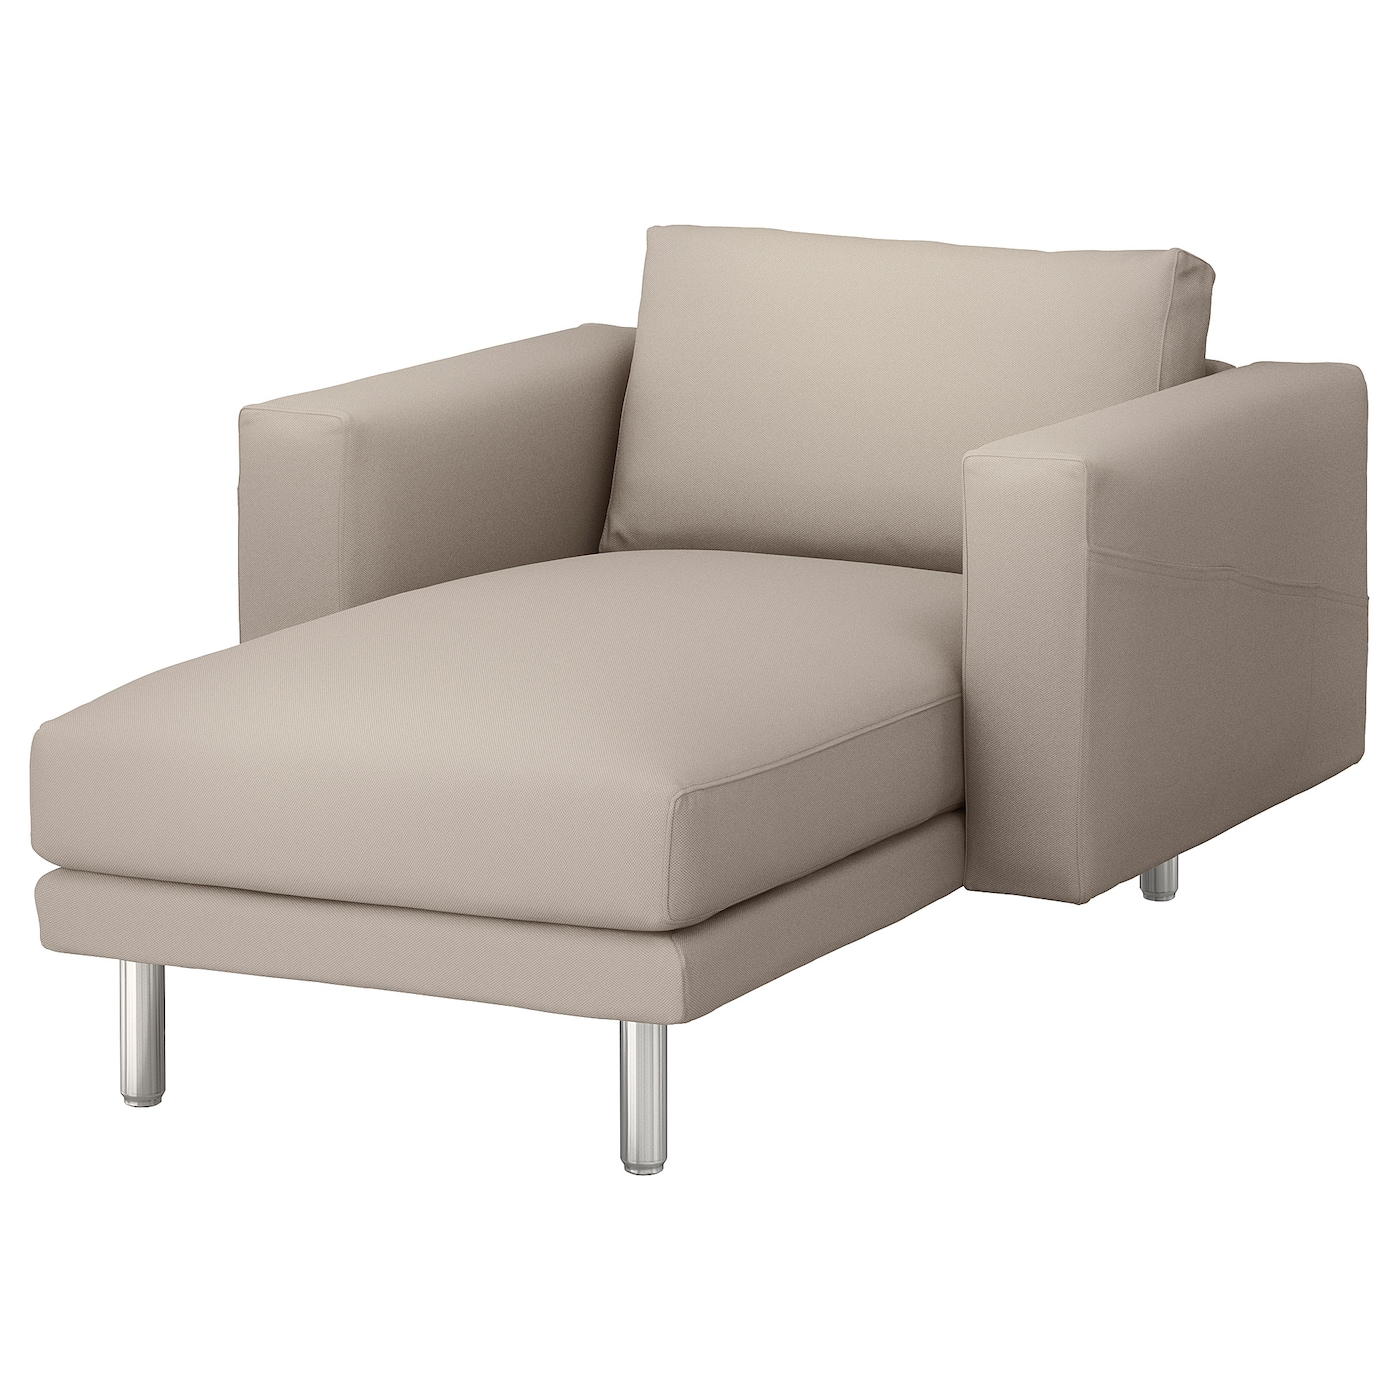 Ikea sofa with chaise modular sofas sectional ikea thesofa for Chaise longue designer